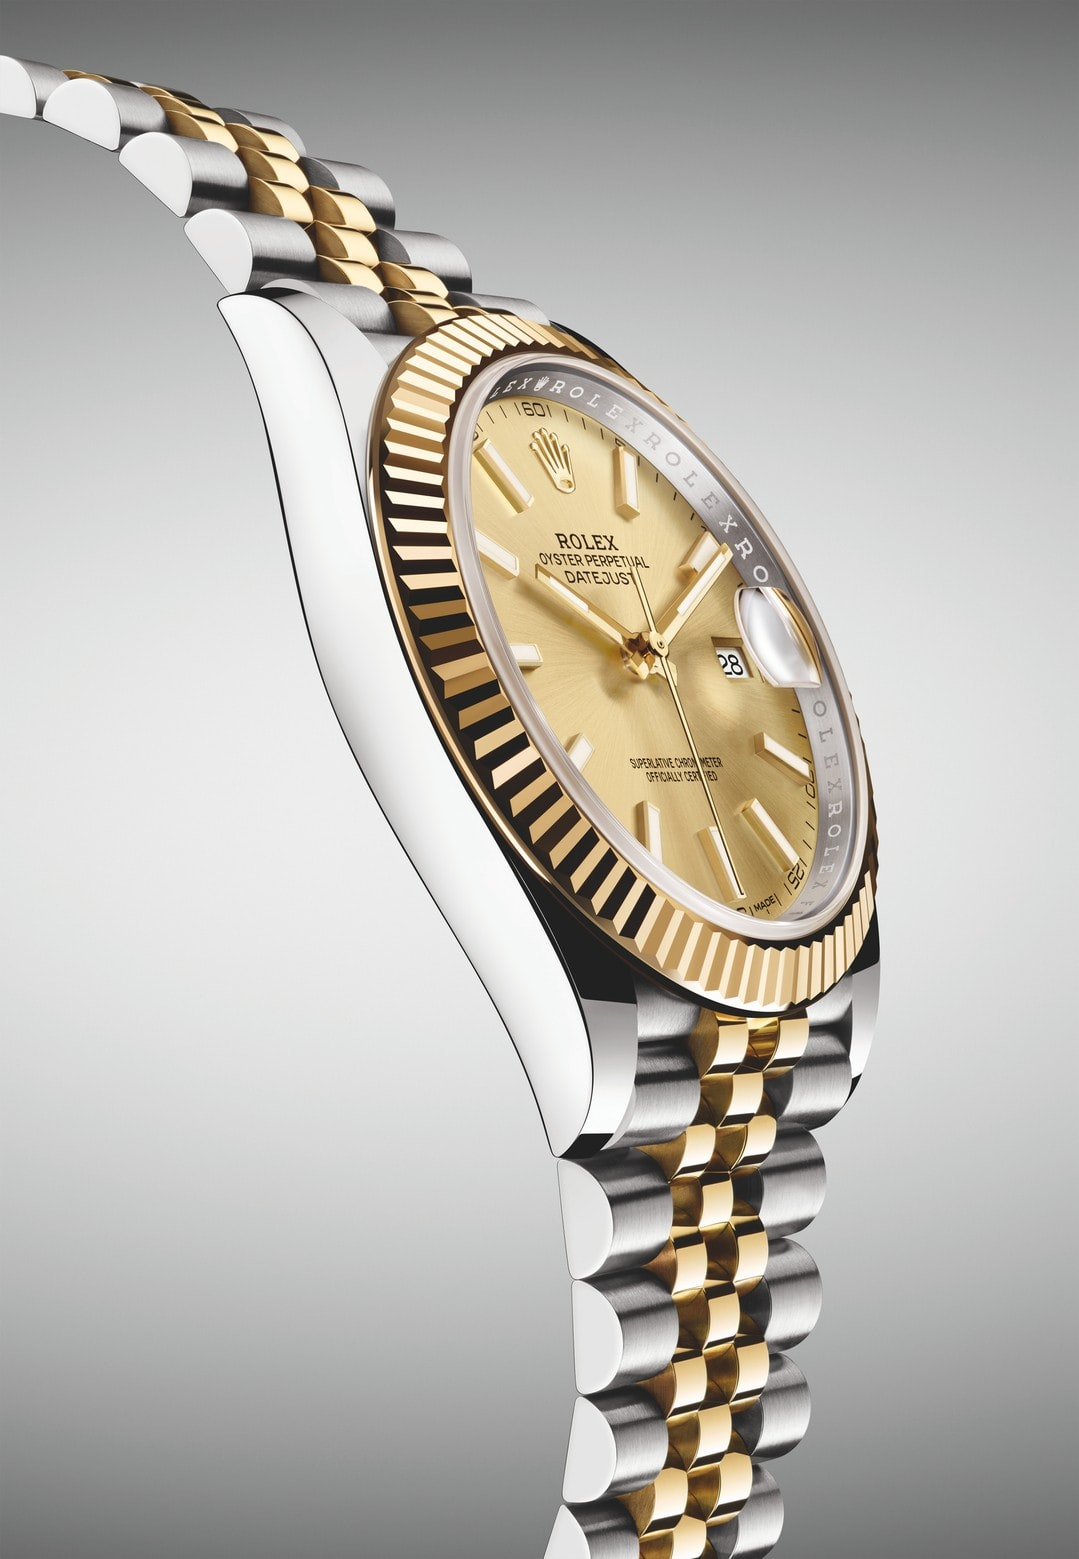 Rolex Datejust 41mm Introducing: The New Rolex Datejust 41mm Introducing: The New Rolex Datejust 41mm Datejust 41 126333 006